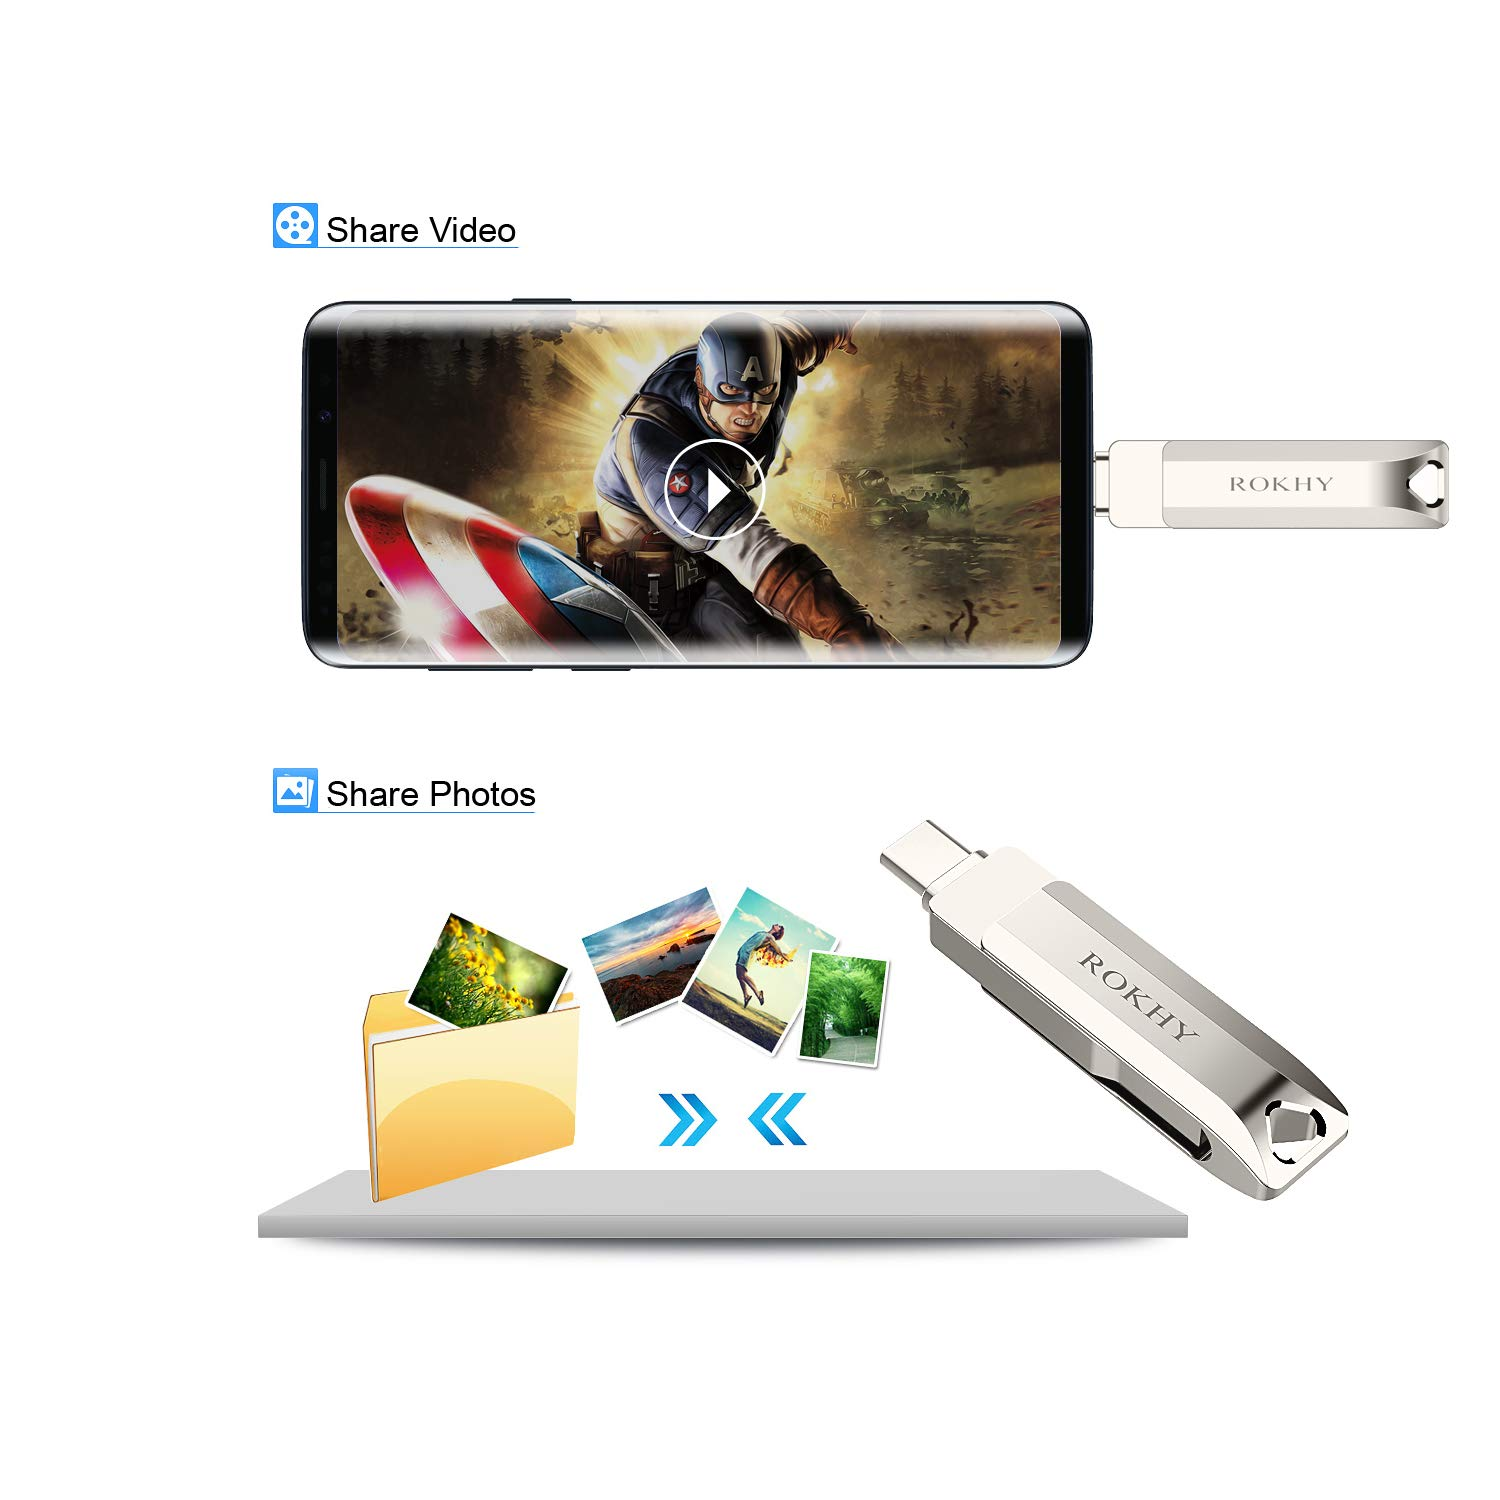 Flash Drive USB Type C Both 3.1 Tech - 2 in 1 Dual Drive Memory Stick High Speed OTG for Android Smartphone Computer, MacBook, Chromebook Pixel - 128GB by ROKHY (Image #5)